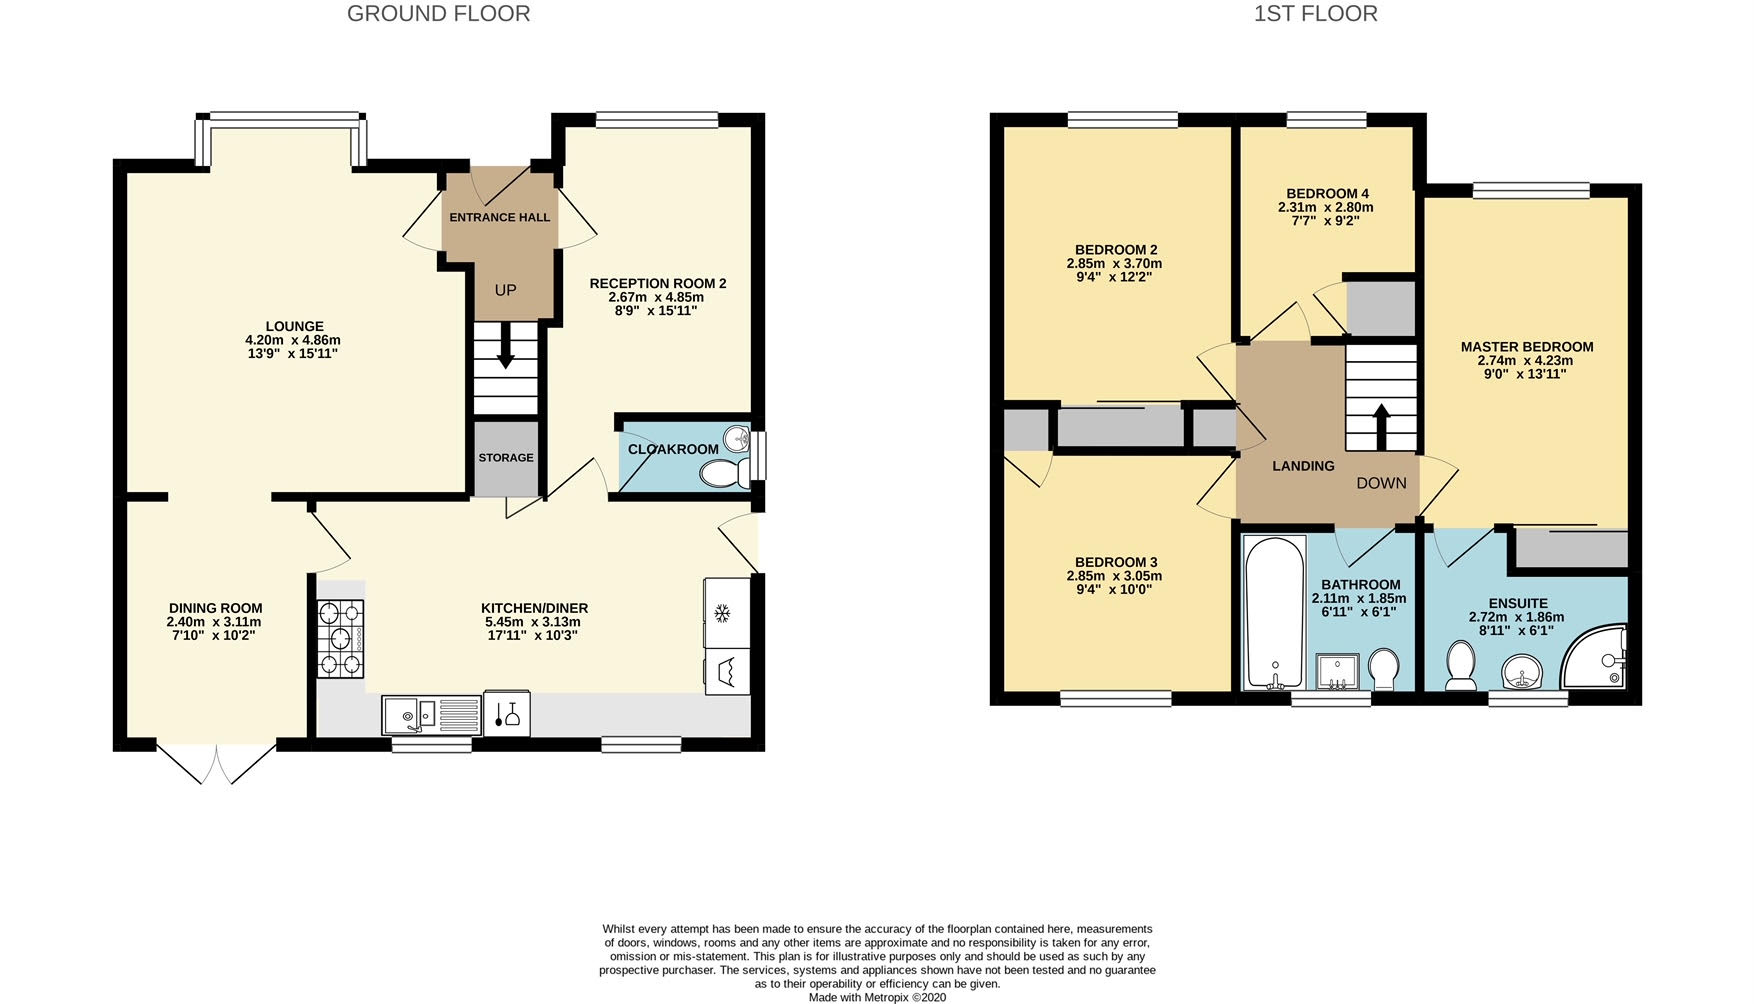 House For Sale, Whitewood Lane, Wigan, Floorplan Image